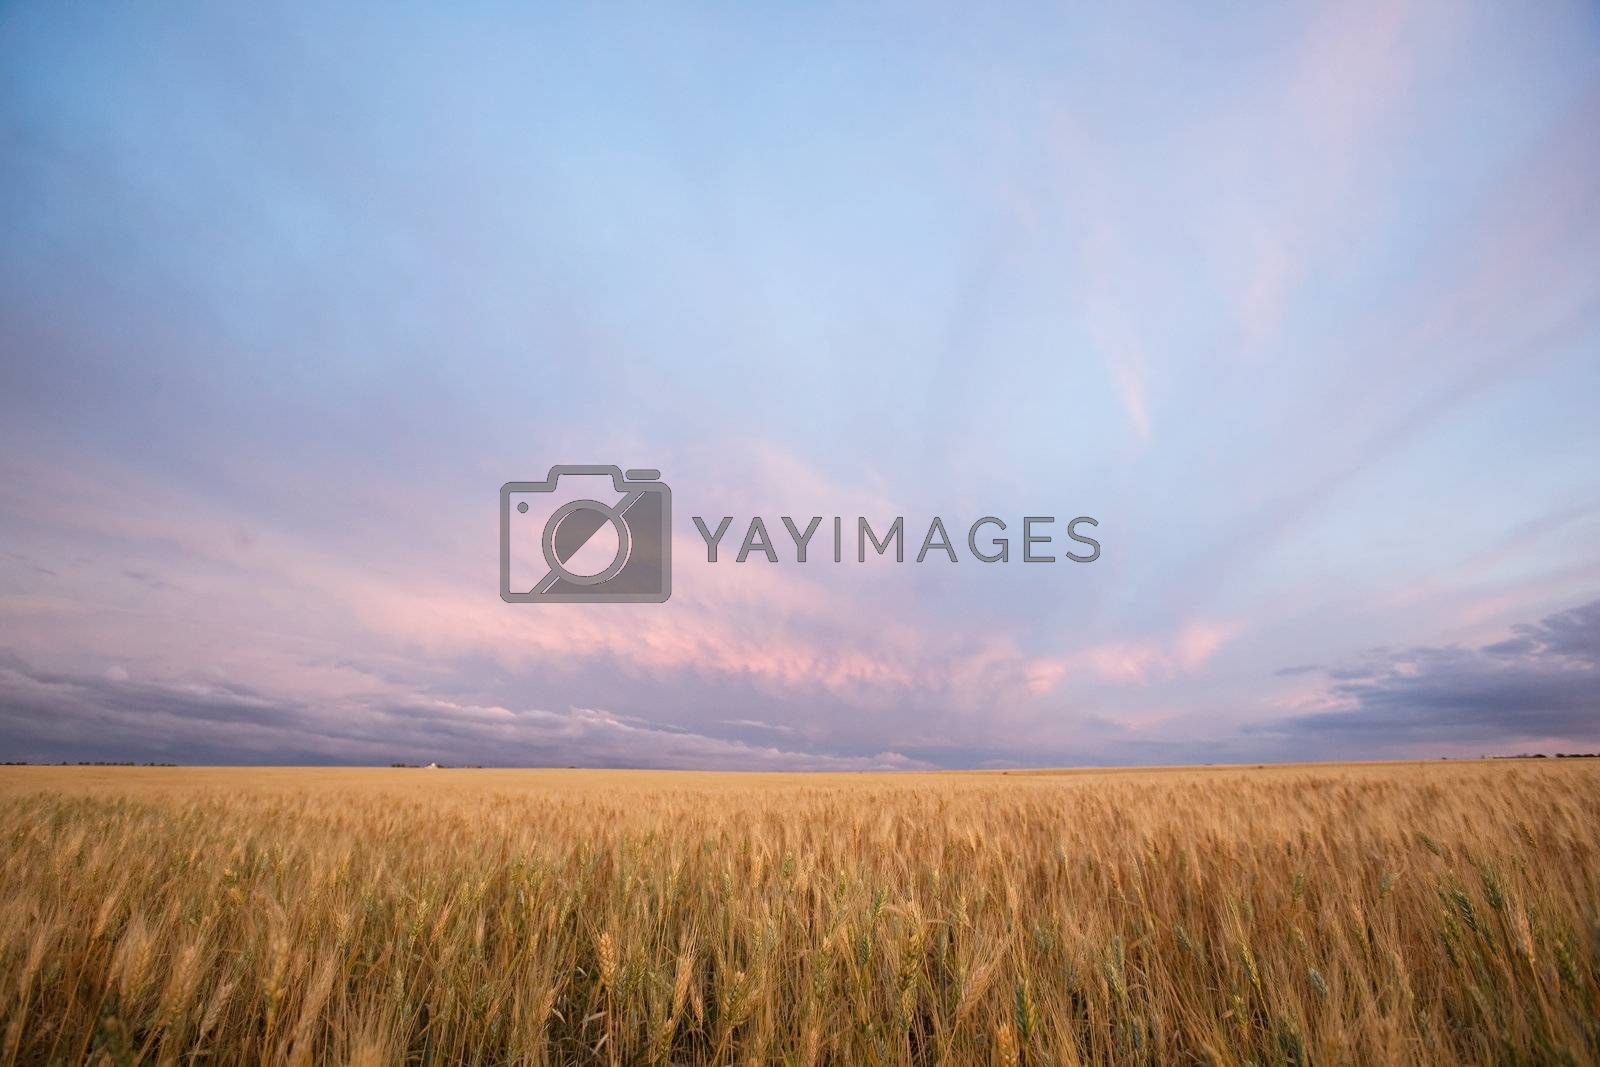 A pairie landscape ready for harvest